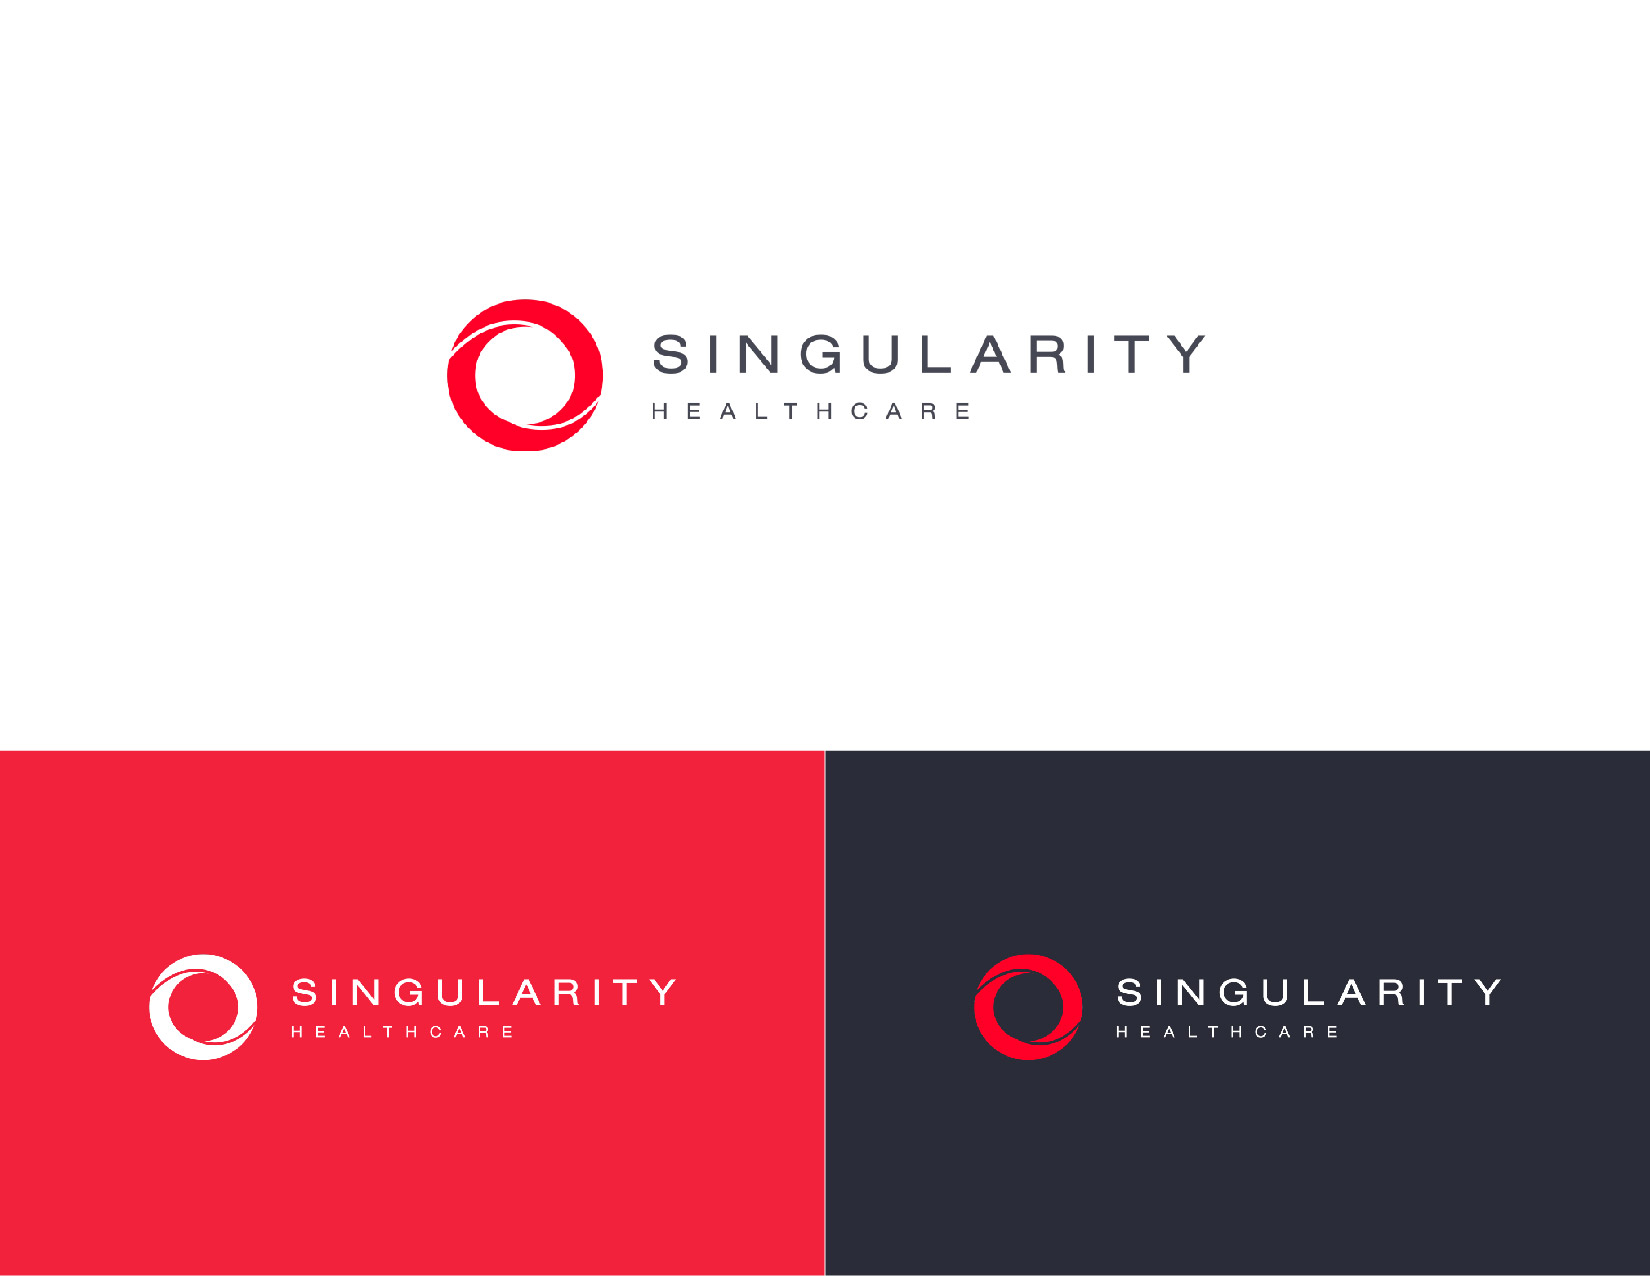 Logo design and branding for Singularity Healthcare, an end-to-end AI marketing platform. James Cannella Marketing, Design, and Artificial Intelligence Consulting Services